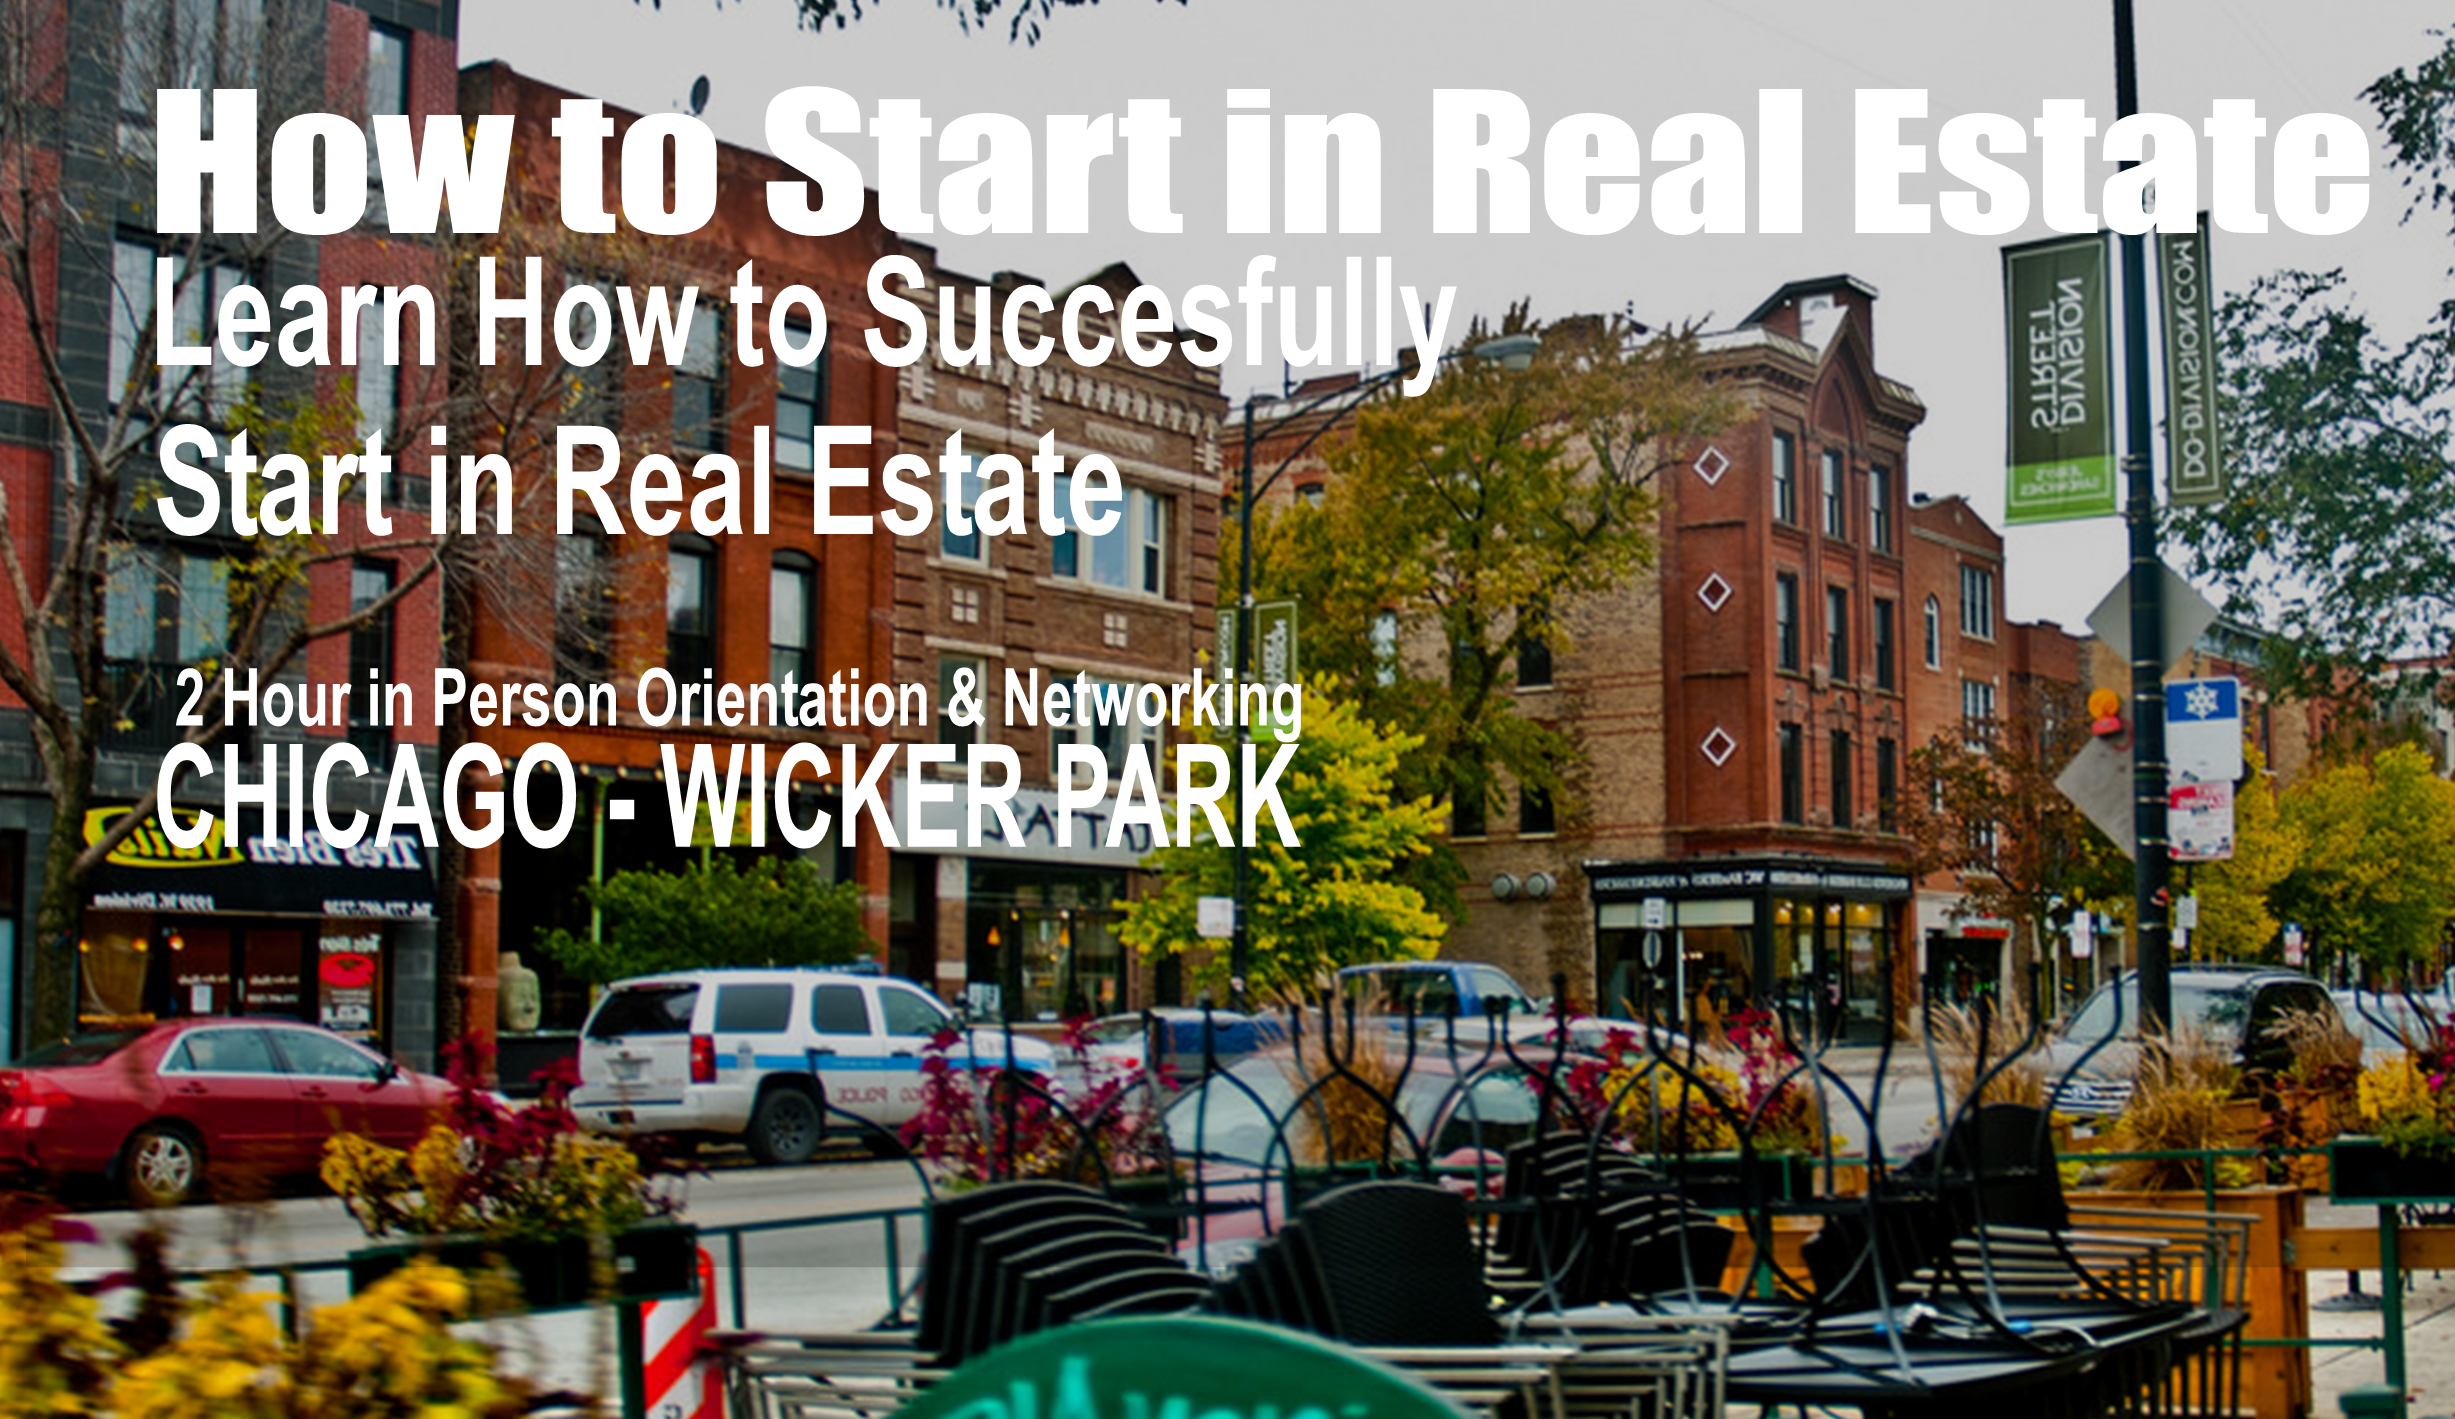 Getting Started in Real Estate - Wicker Park